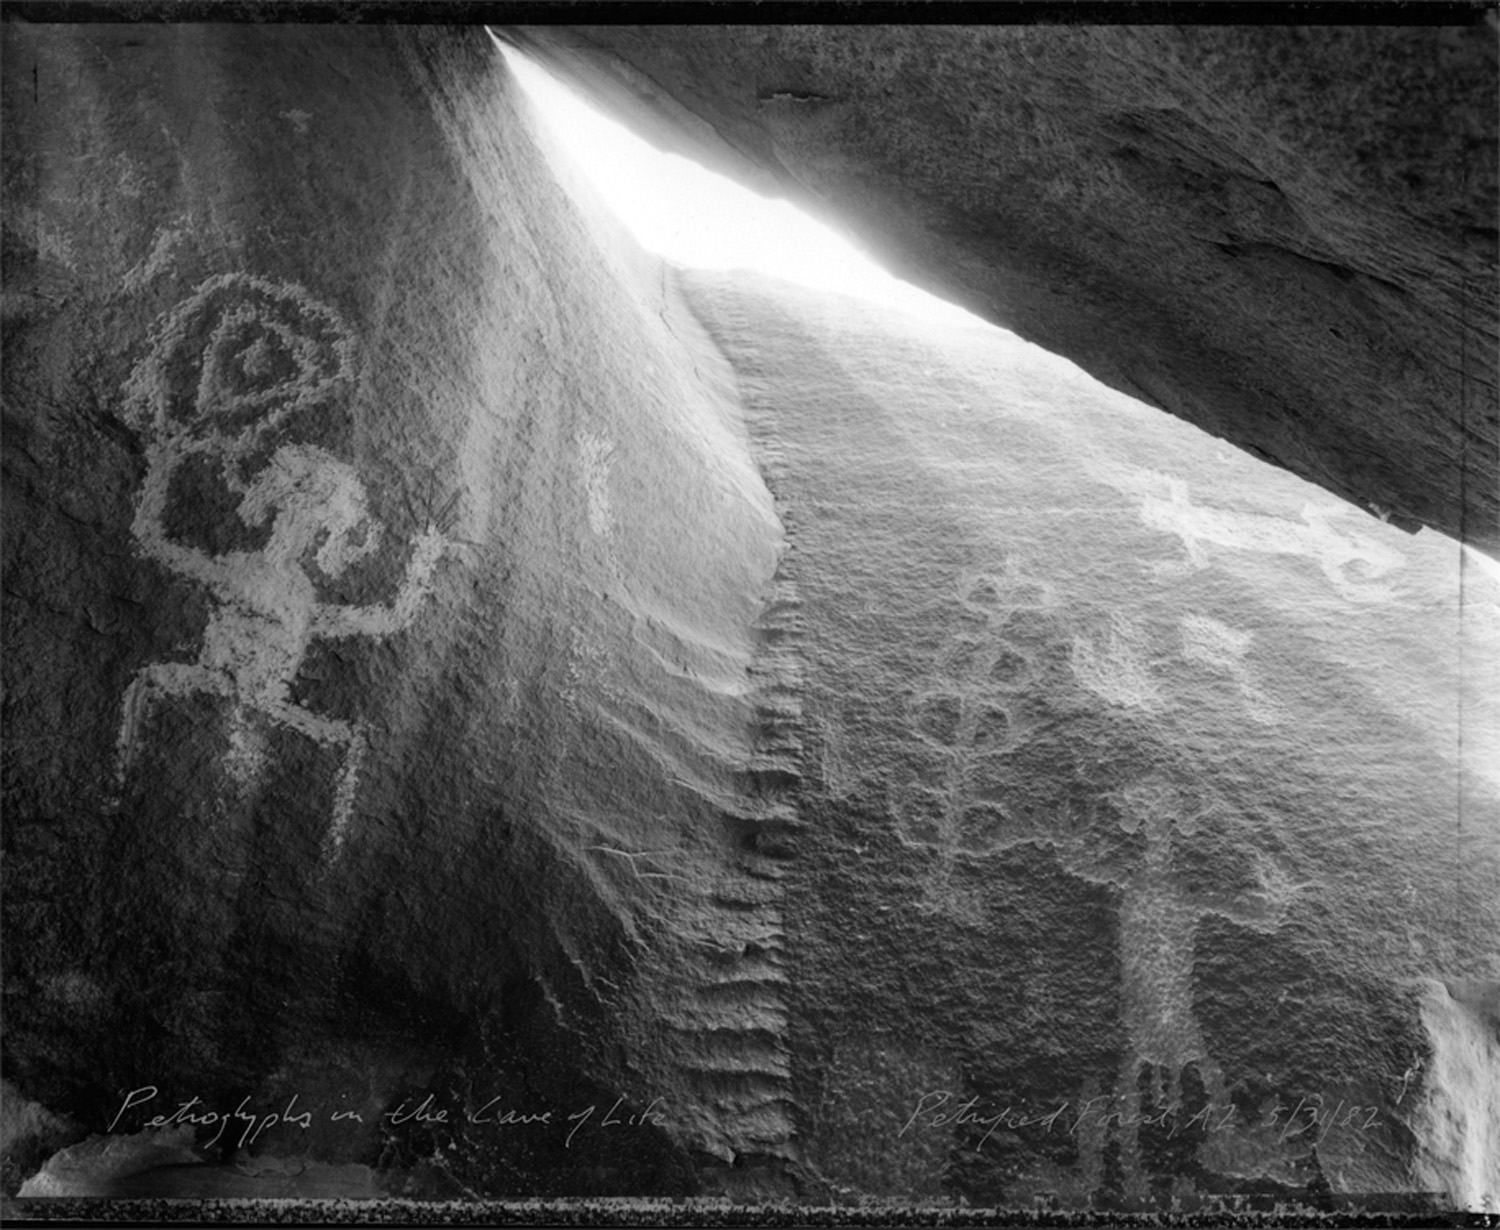 Petroglyphs in the Cave of Life, Petrified Forest, AZ, 1982